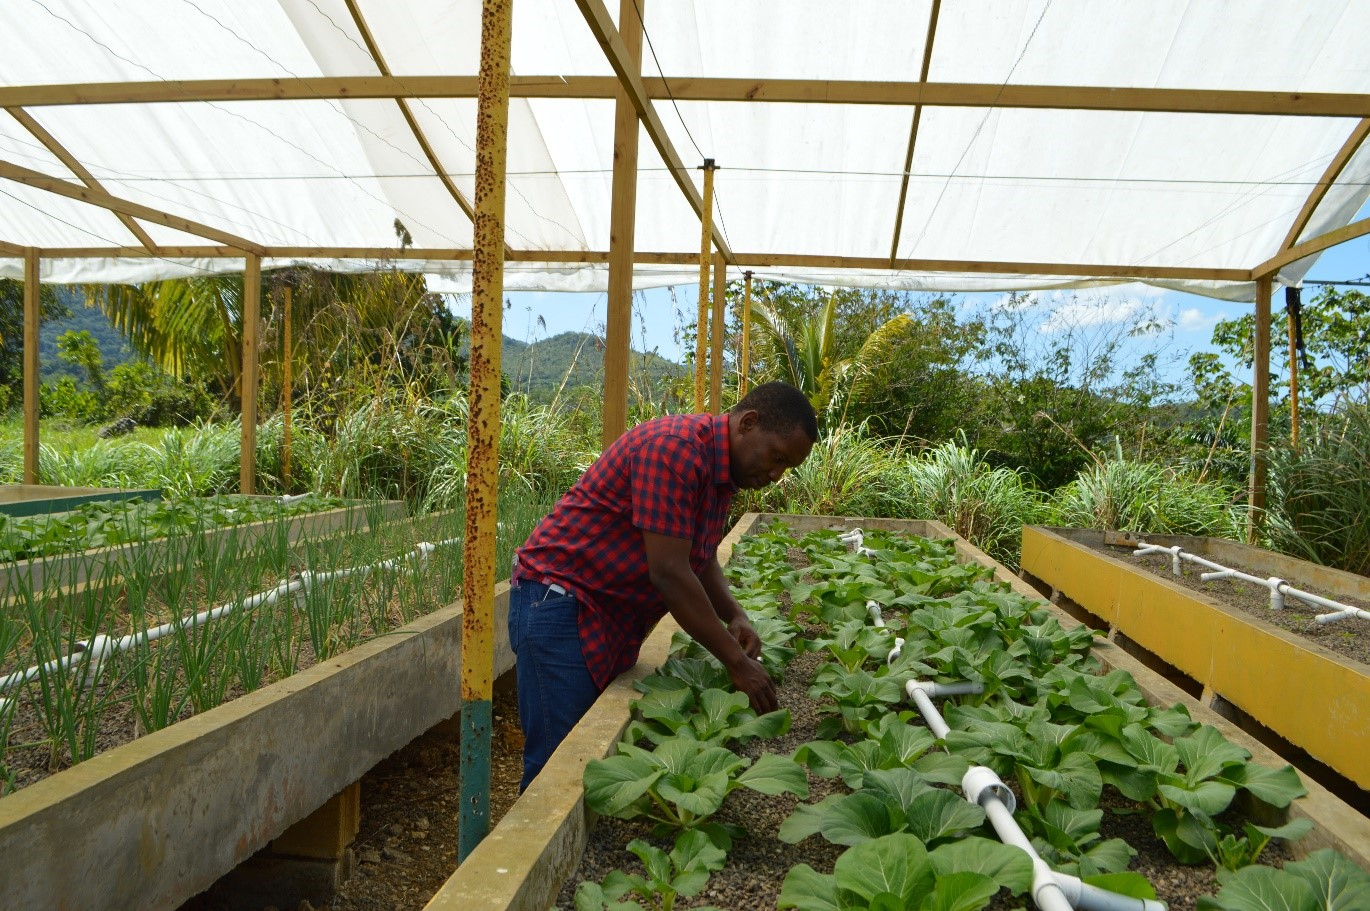 Man in red plaid shirt in aquaponics greenhouse checking crops